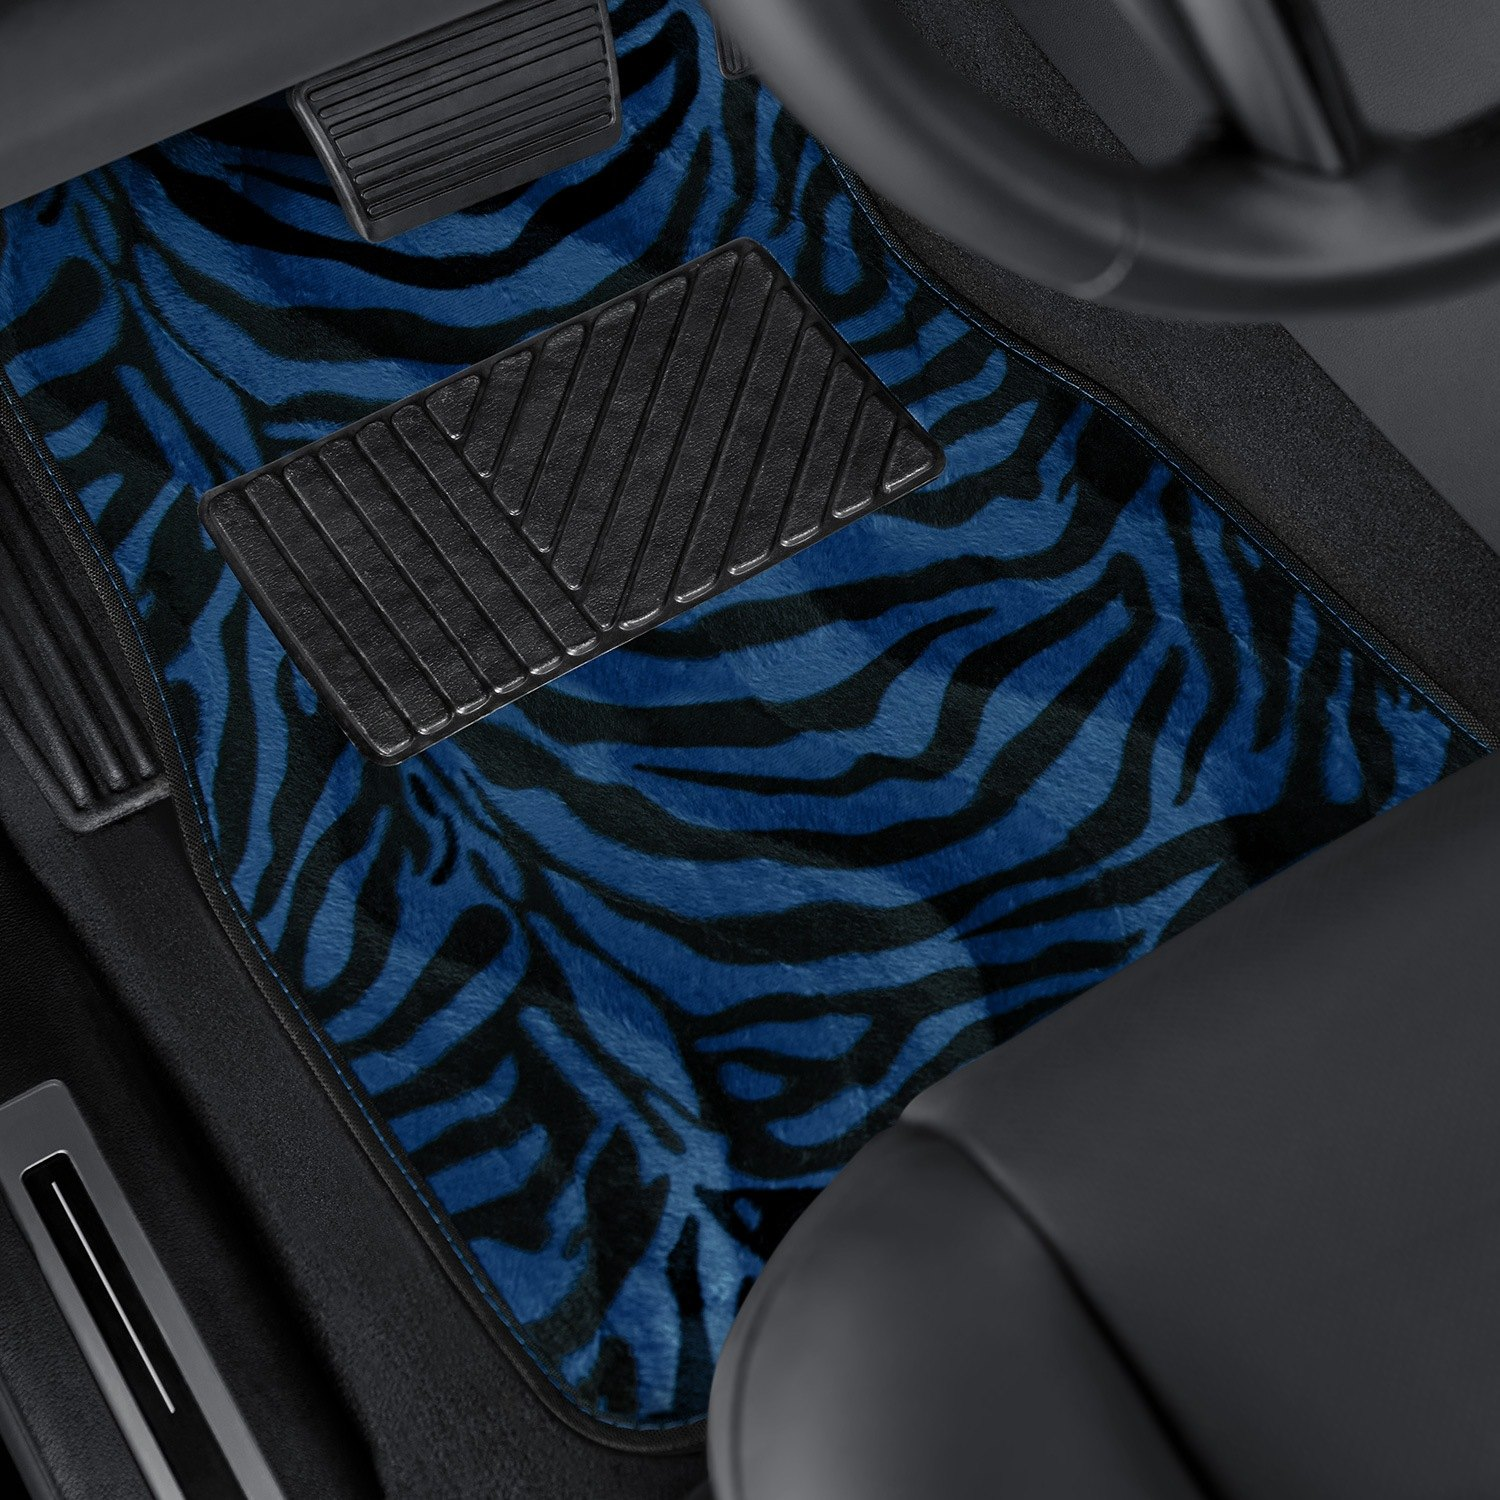 OxGord® - Zebra/Tiger Stripe Style Carpeted Floor Mats with Heel Pad